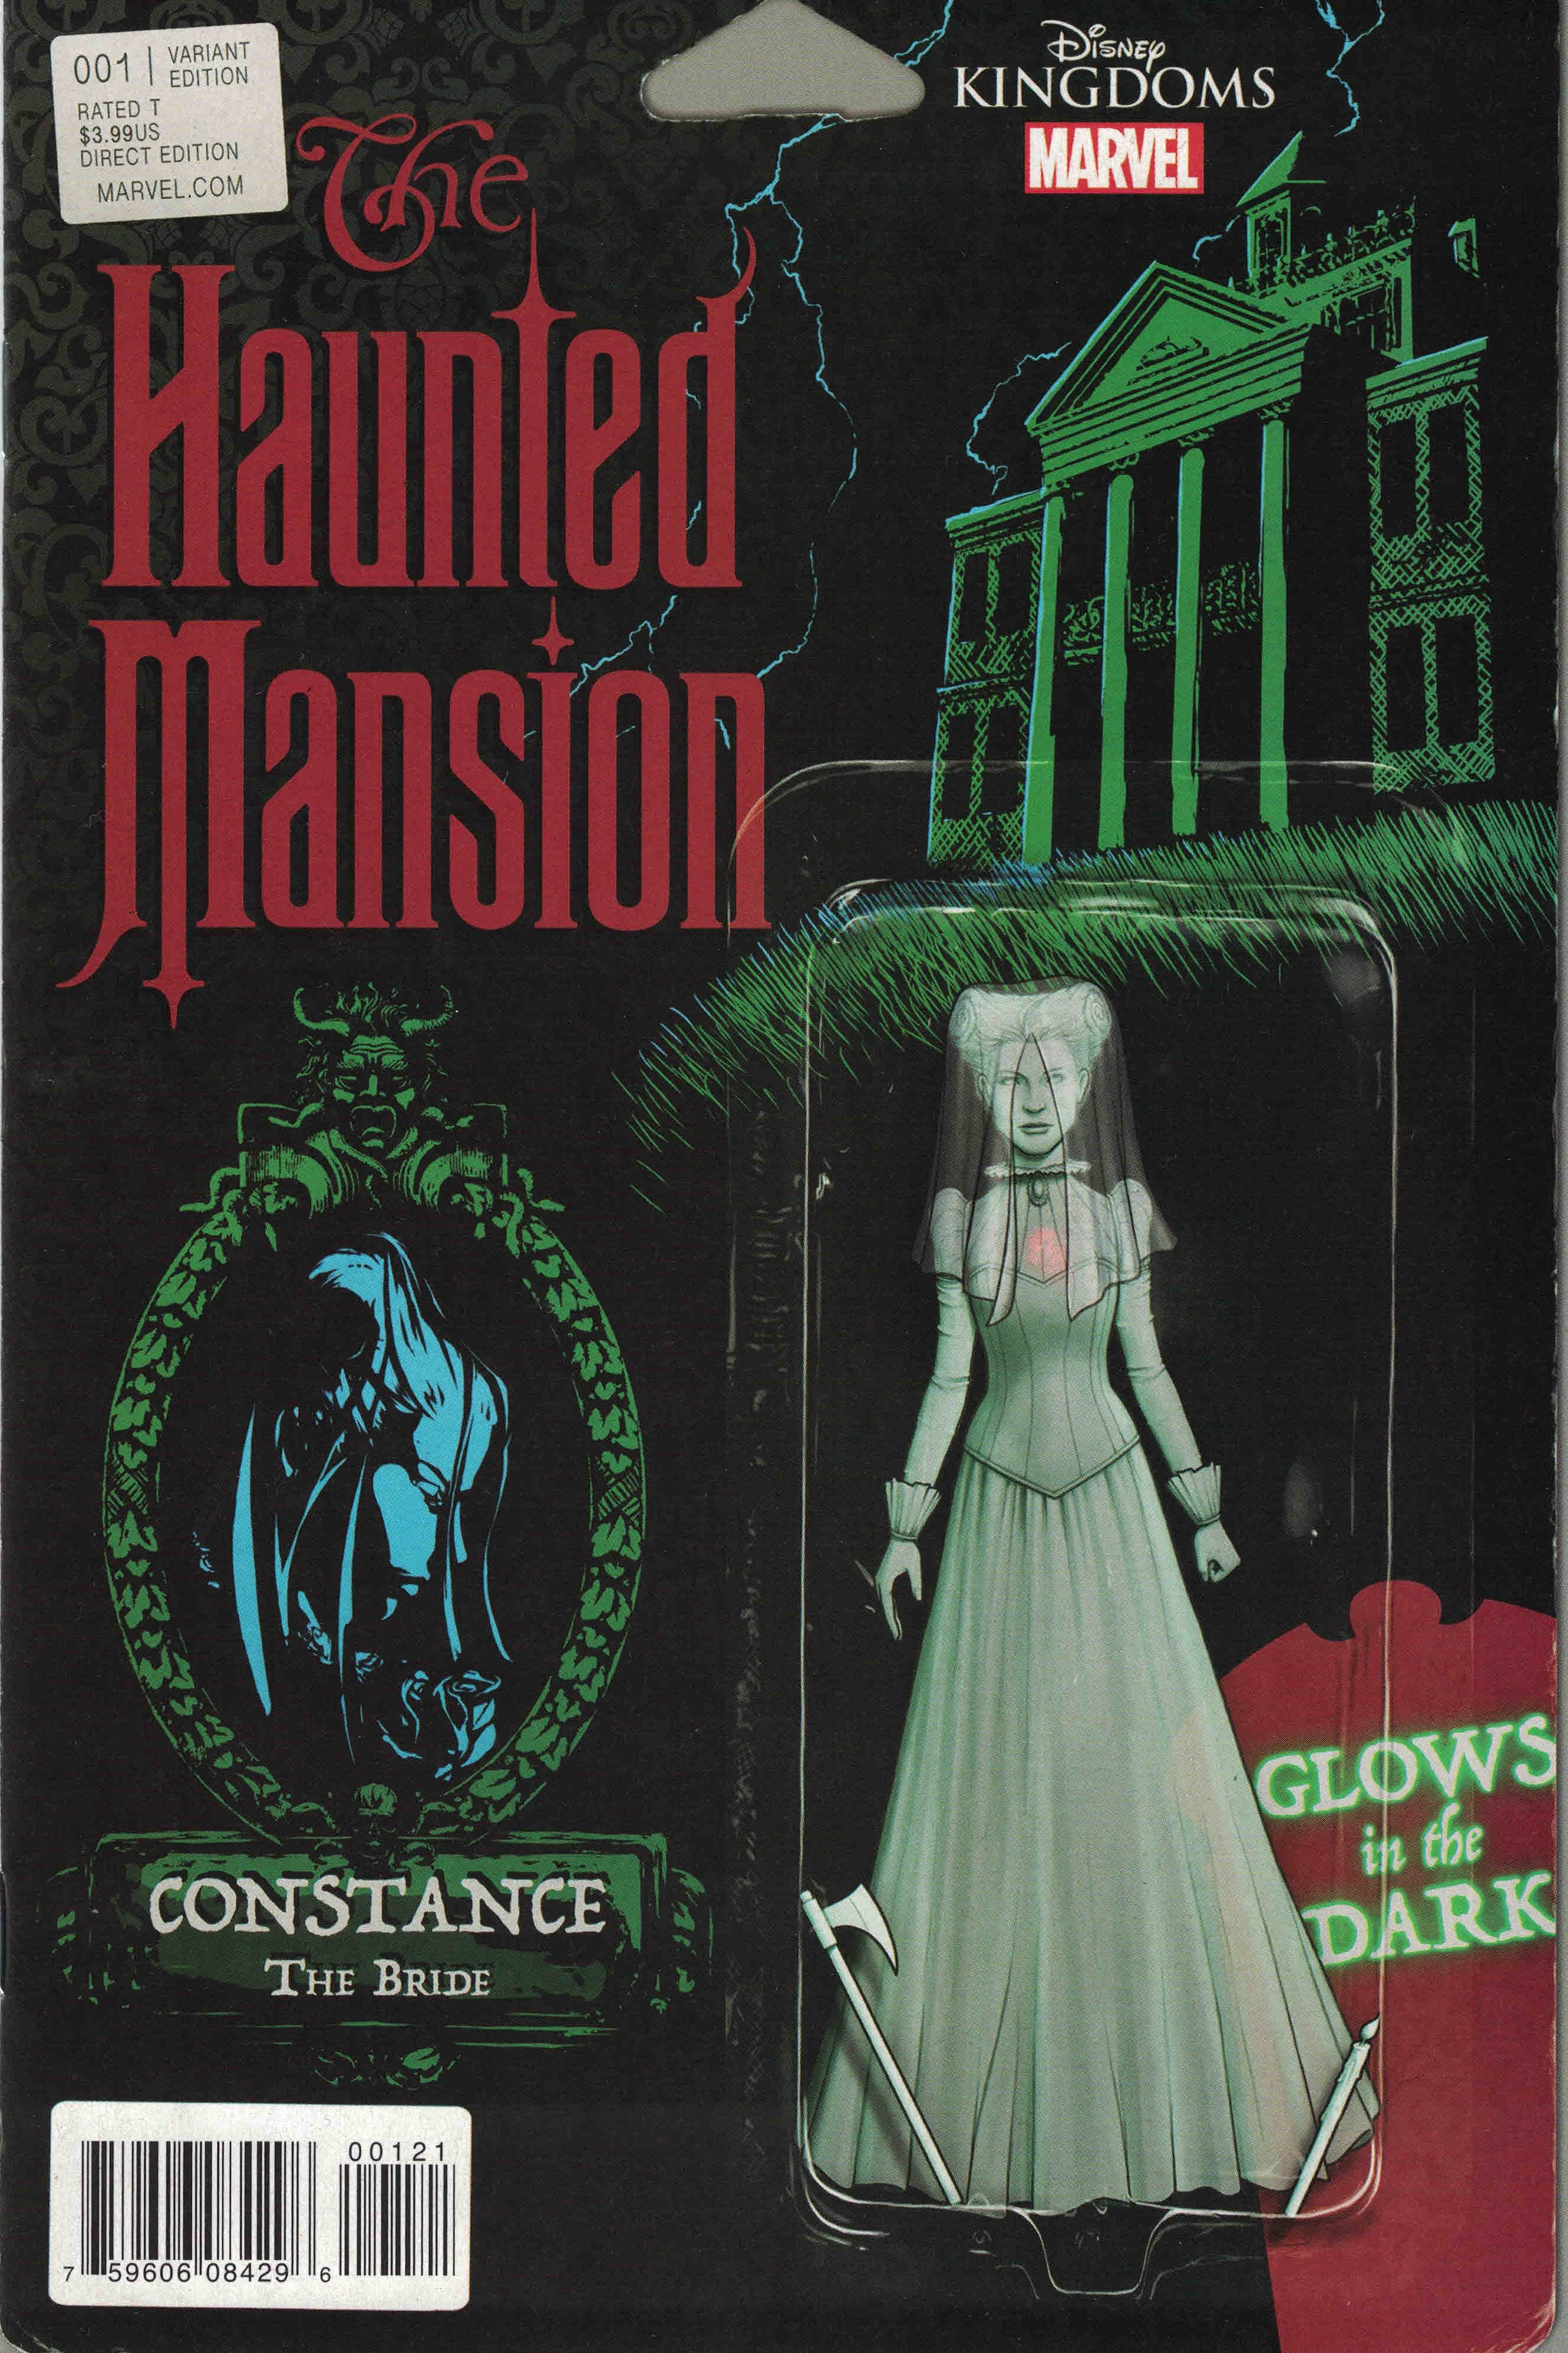 New Marvel Disney Kingdoms The Haunted Mansion #001 Variant Edition Comic Book